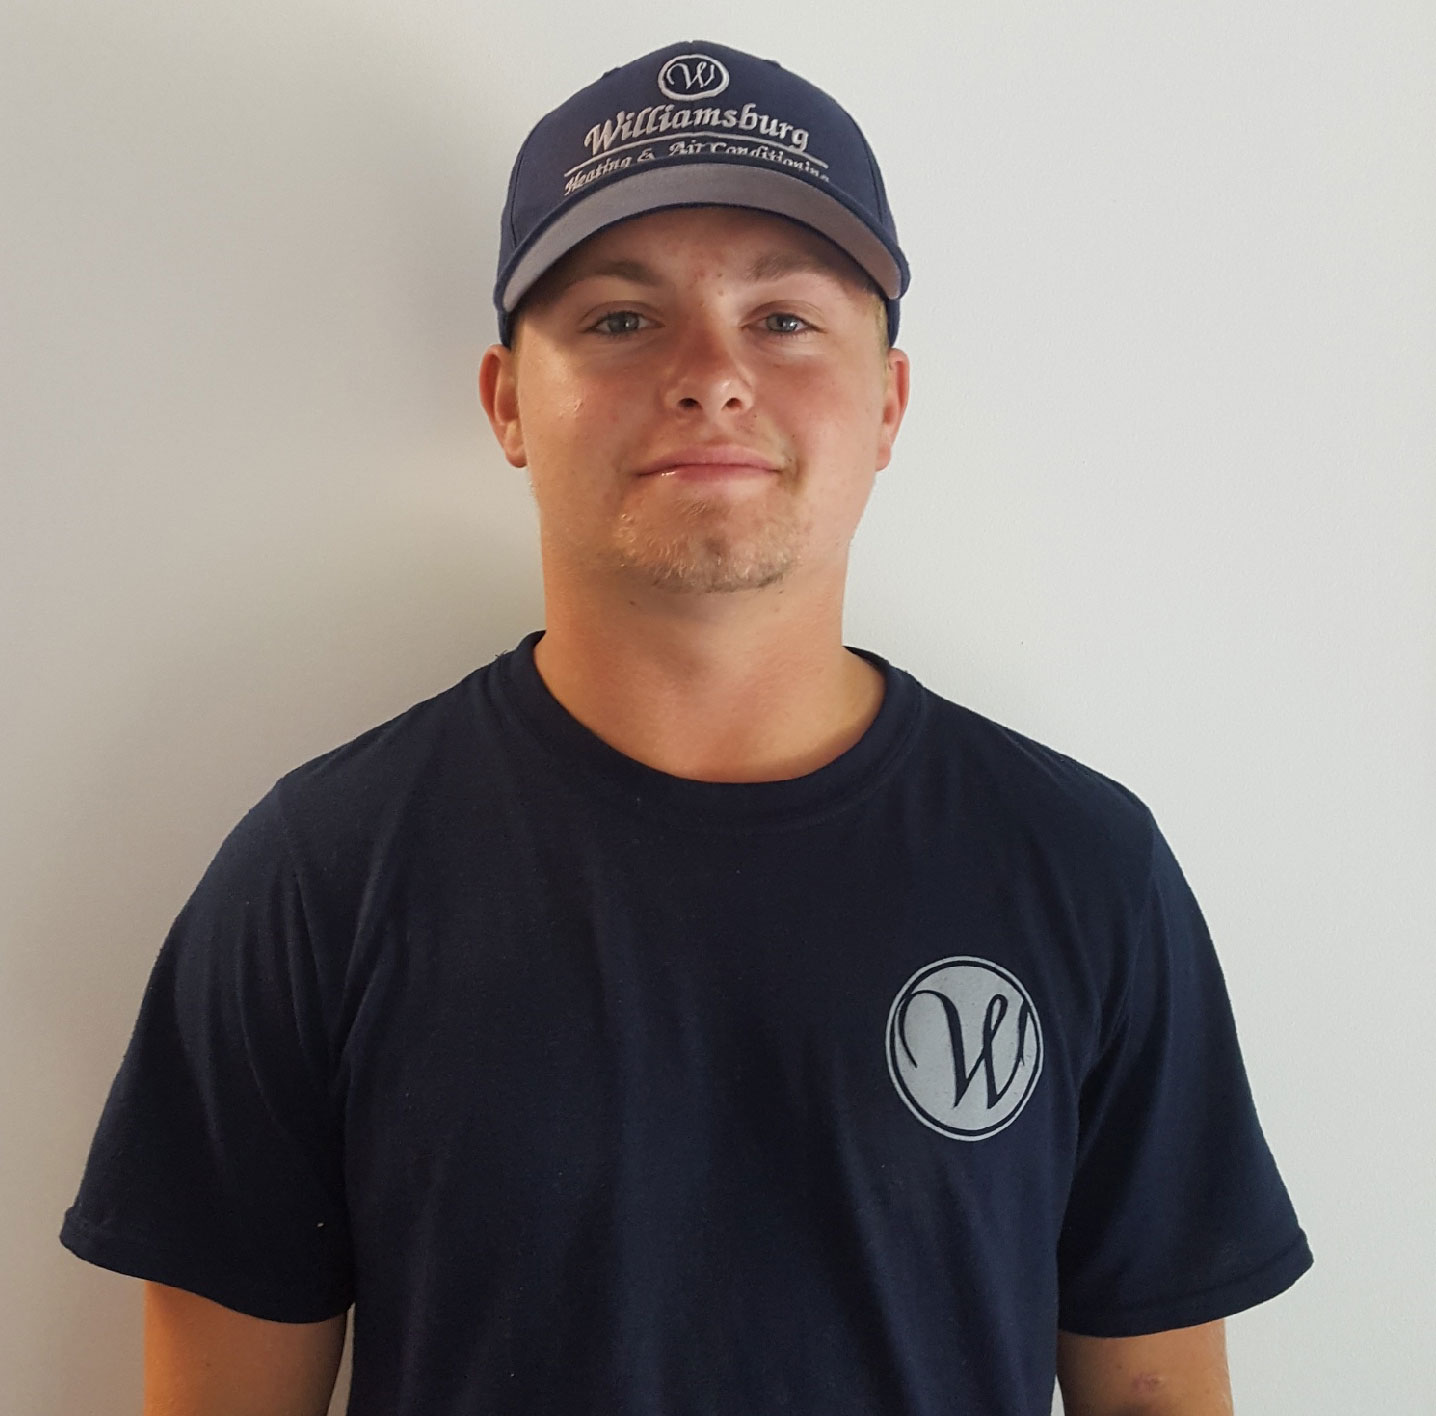 Hunter Pitts - Williamsburg Heating & Air Conditioning - Heating & Cooling Specialists